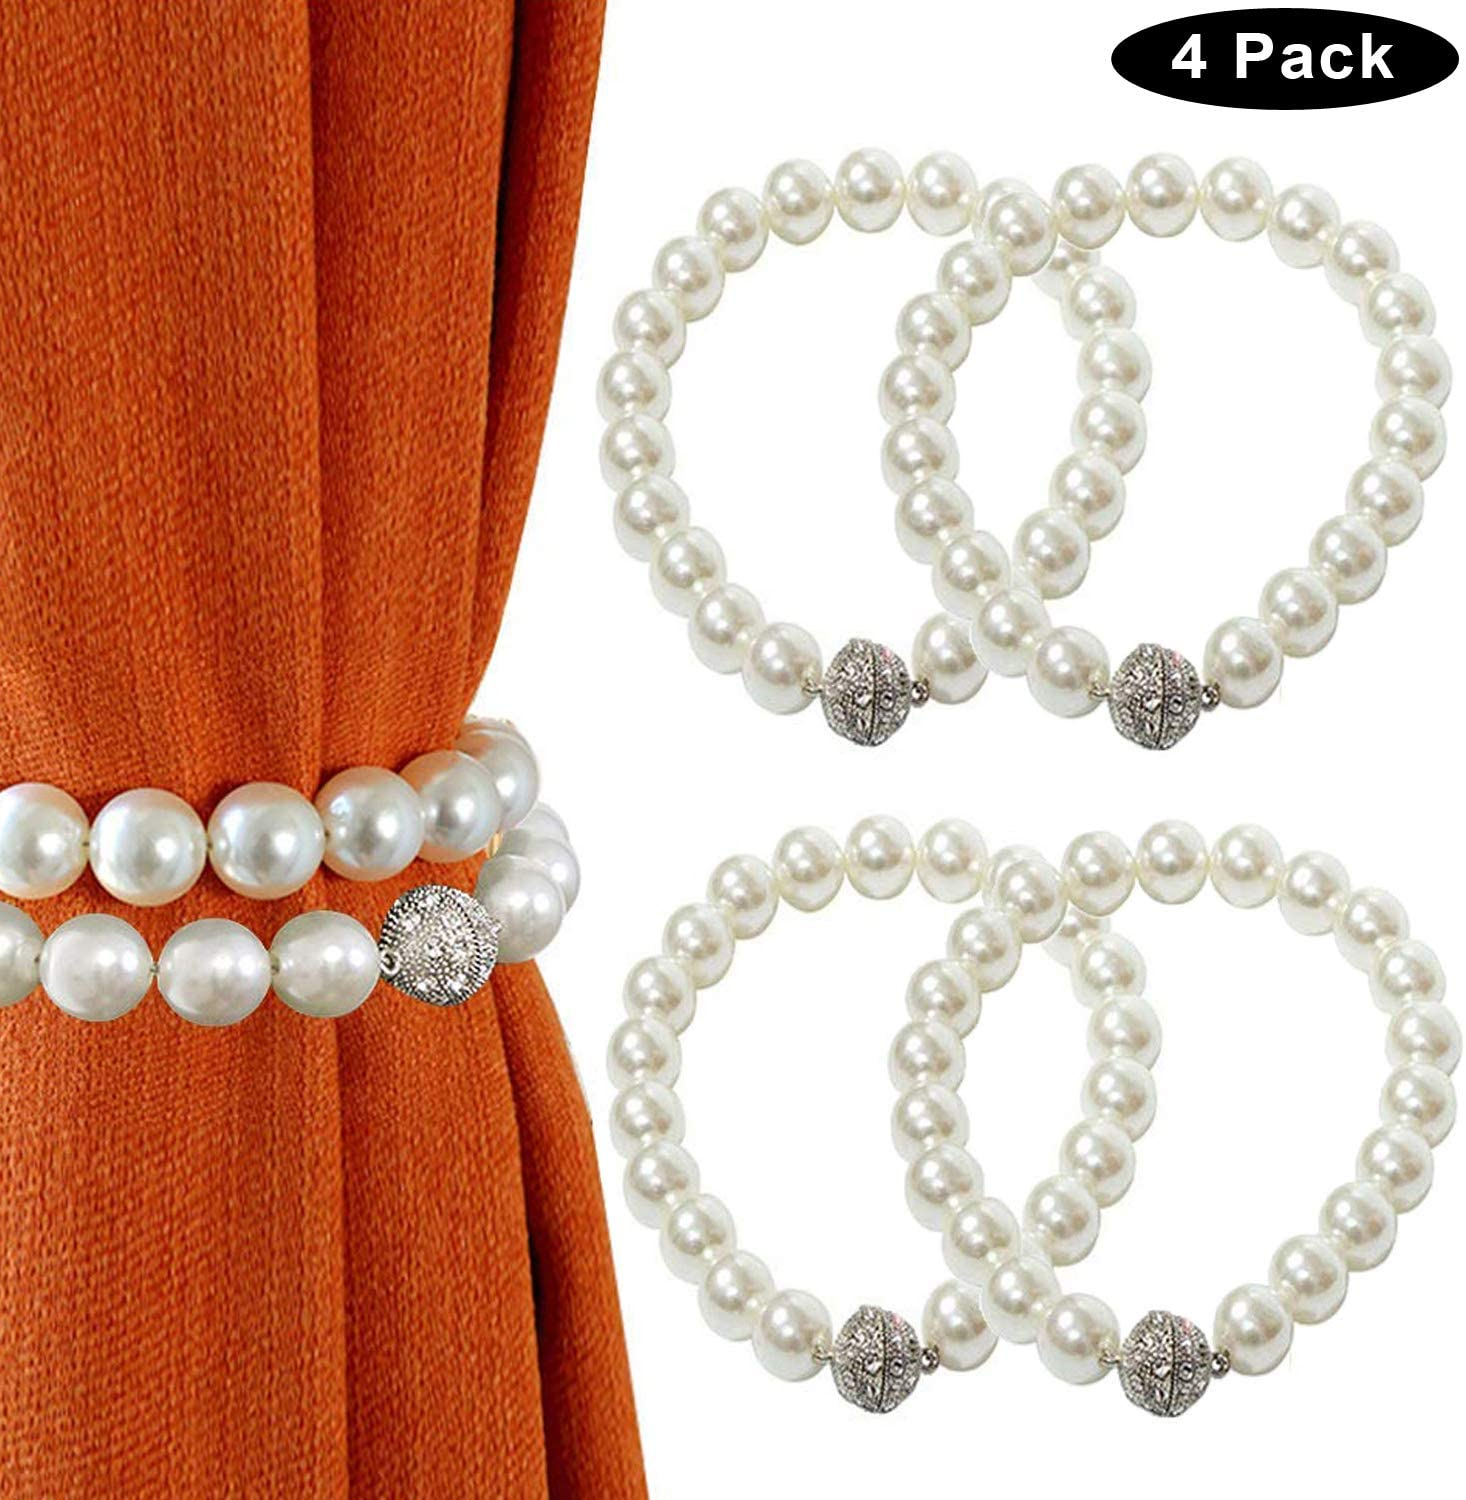 magnetic curtain tiebacks decorative pearl style curtain holdbacks clips elegant window draperies rope ties fit all curtains 4 white